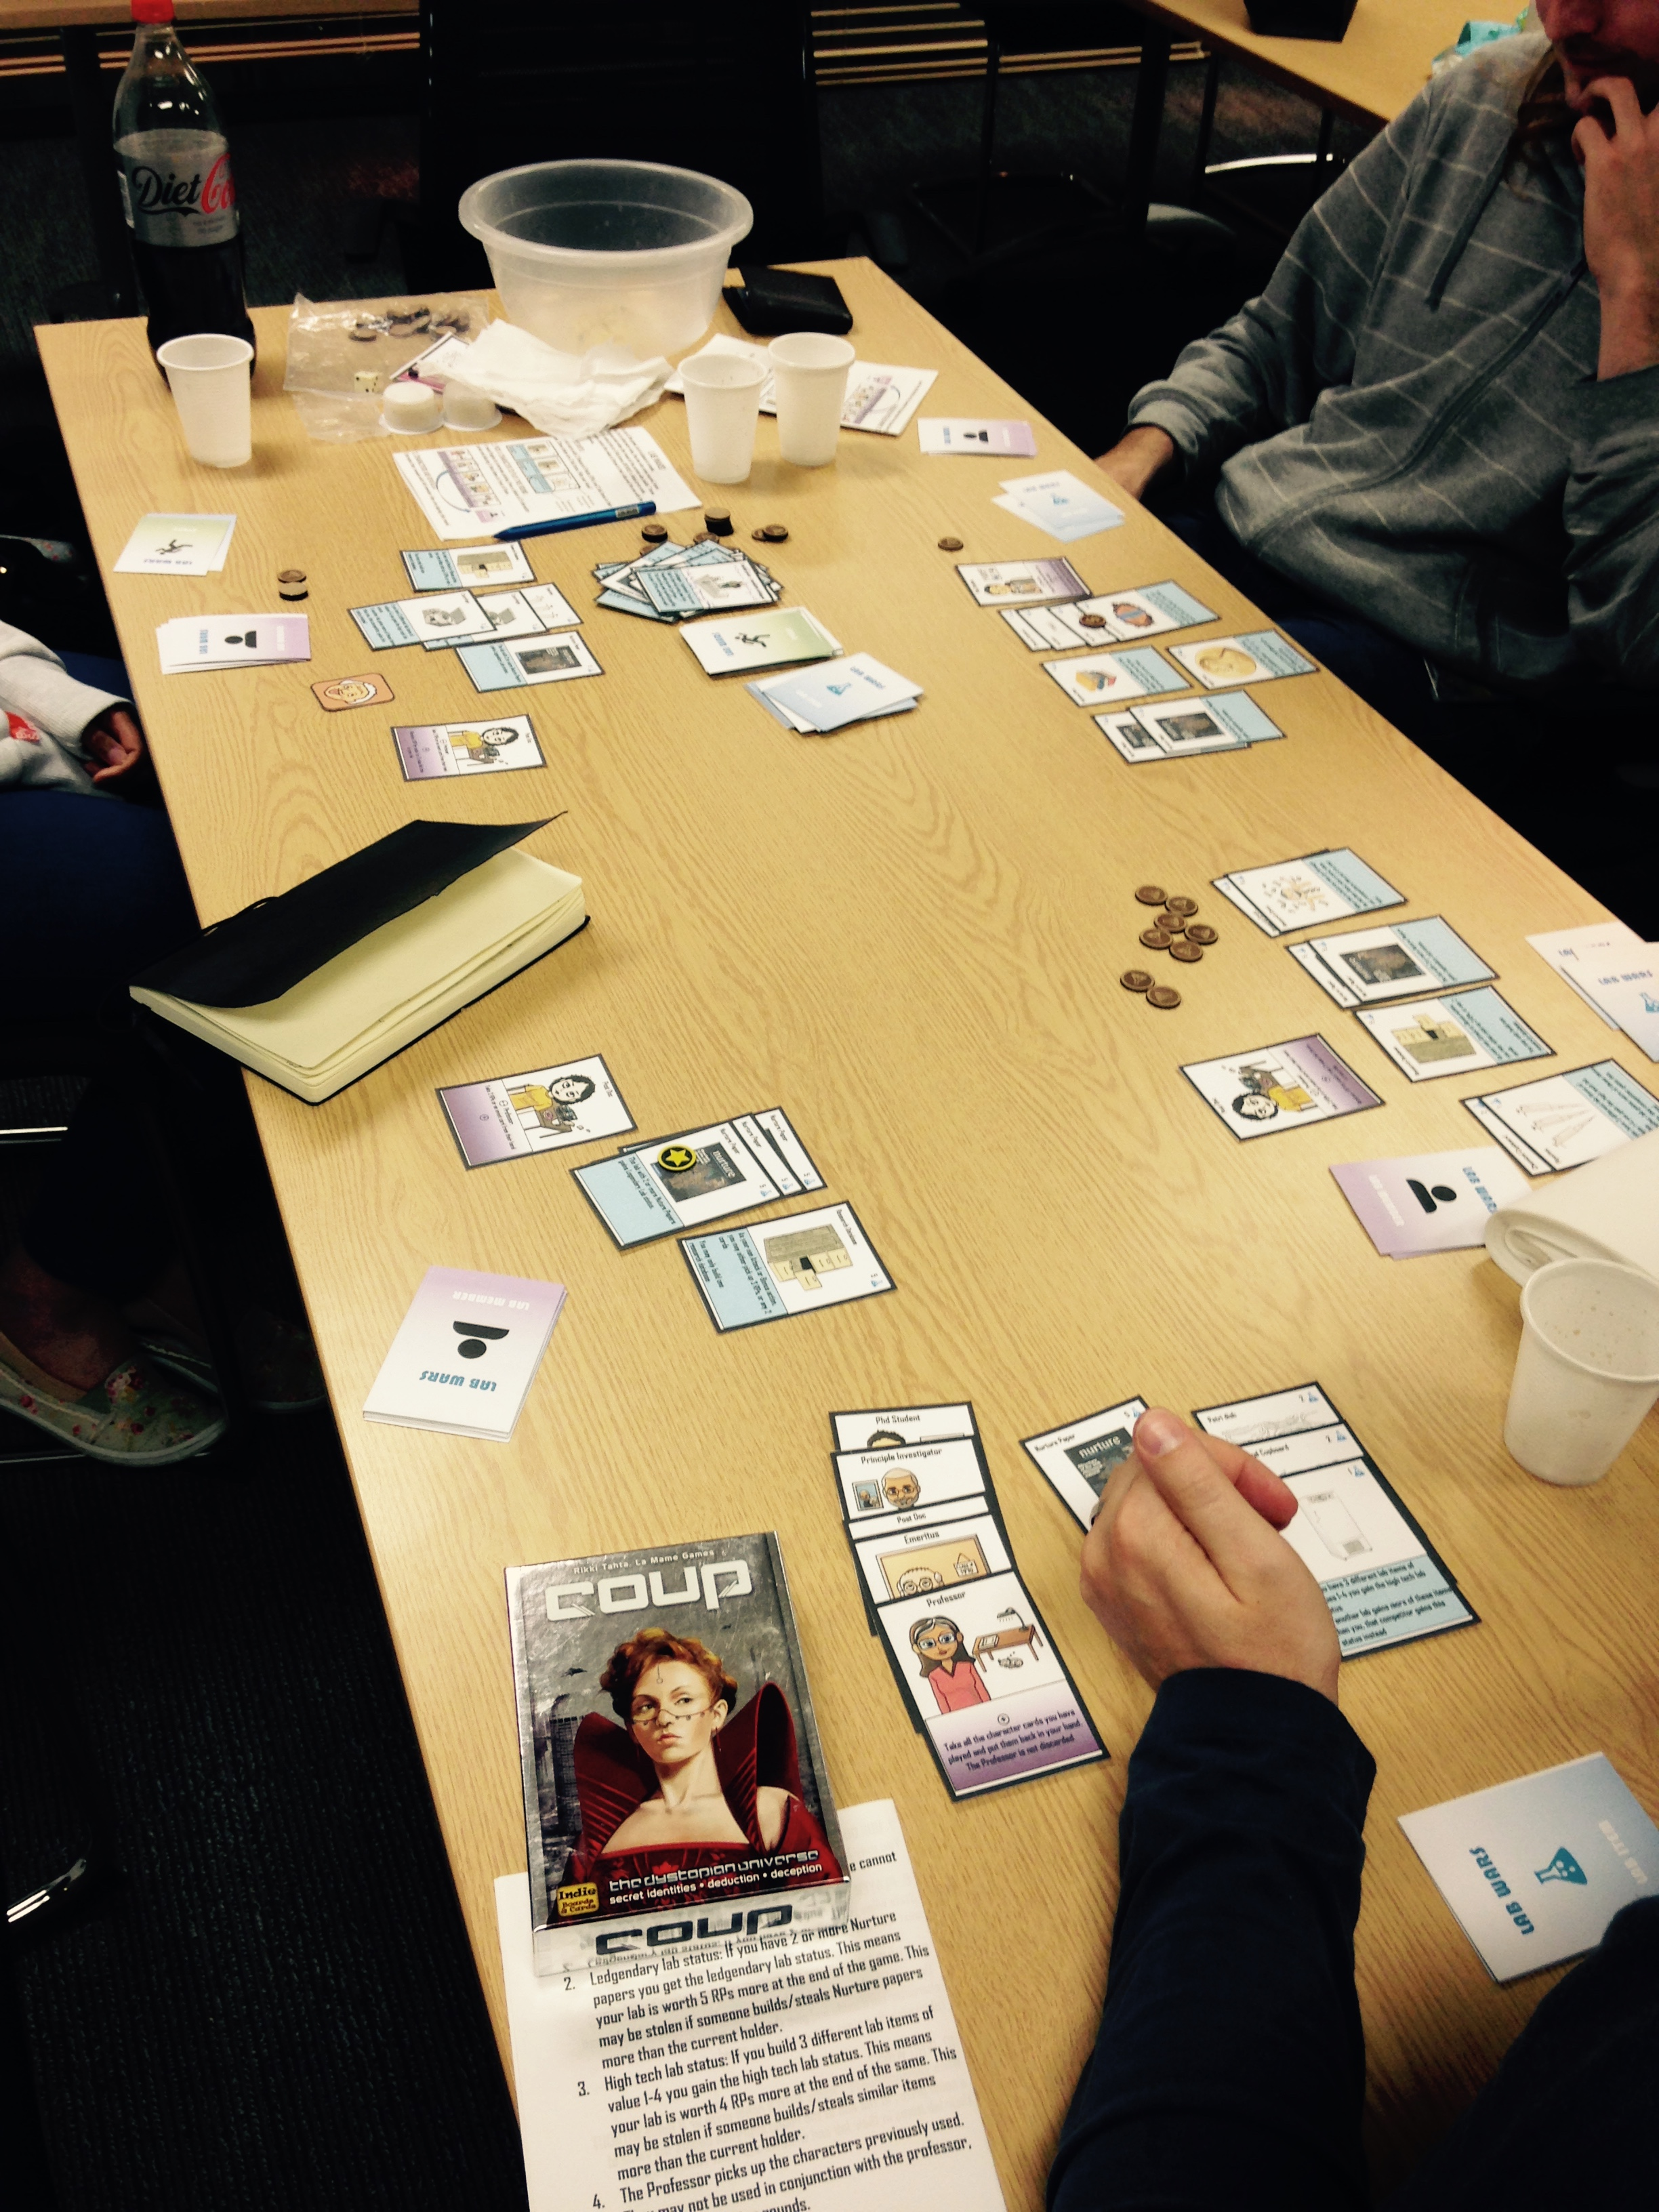 Playtesting in my department